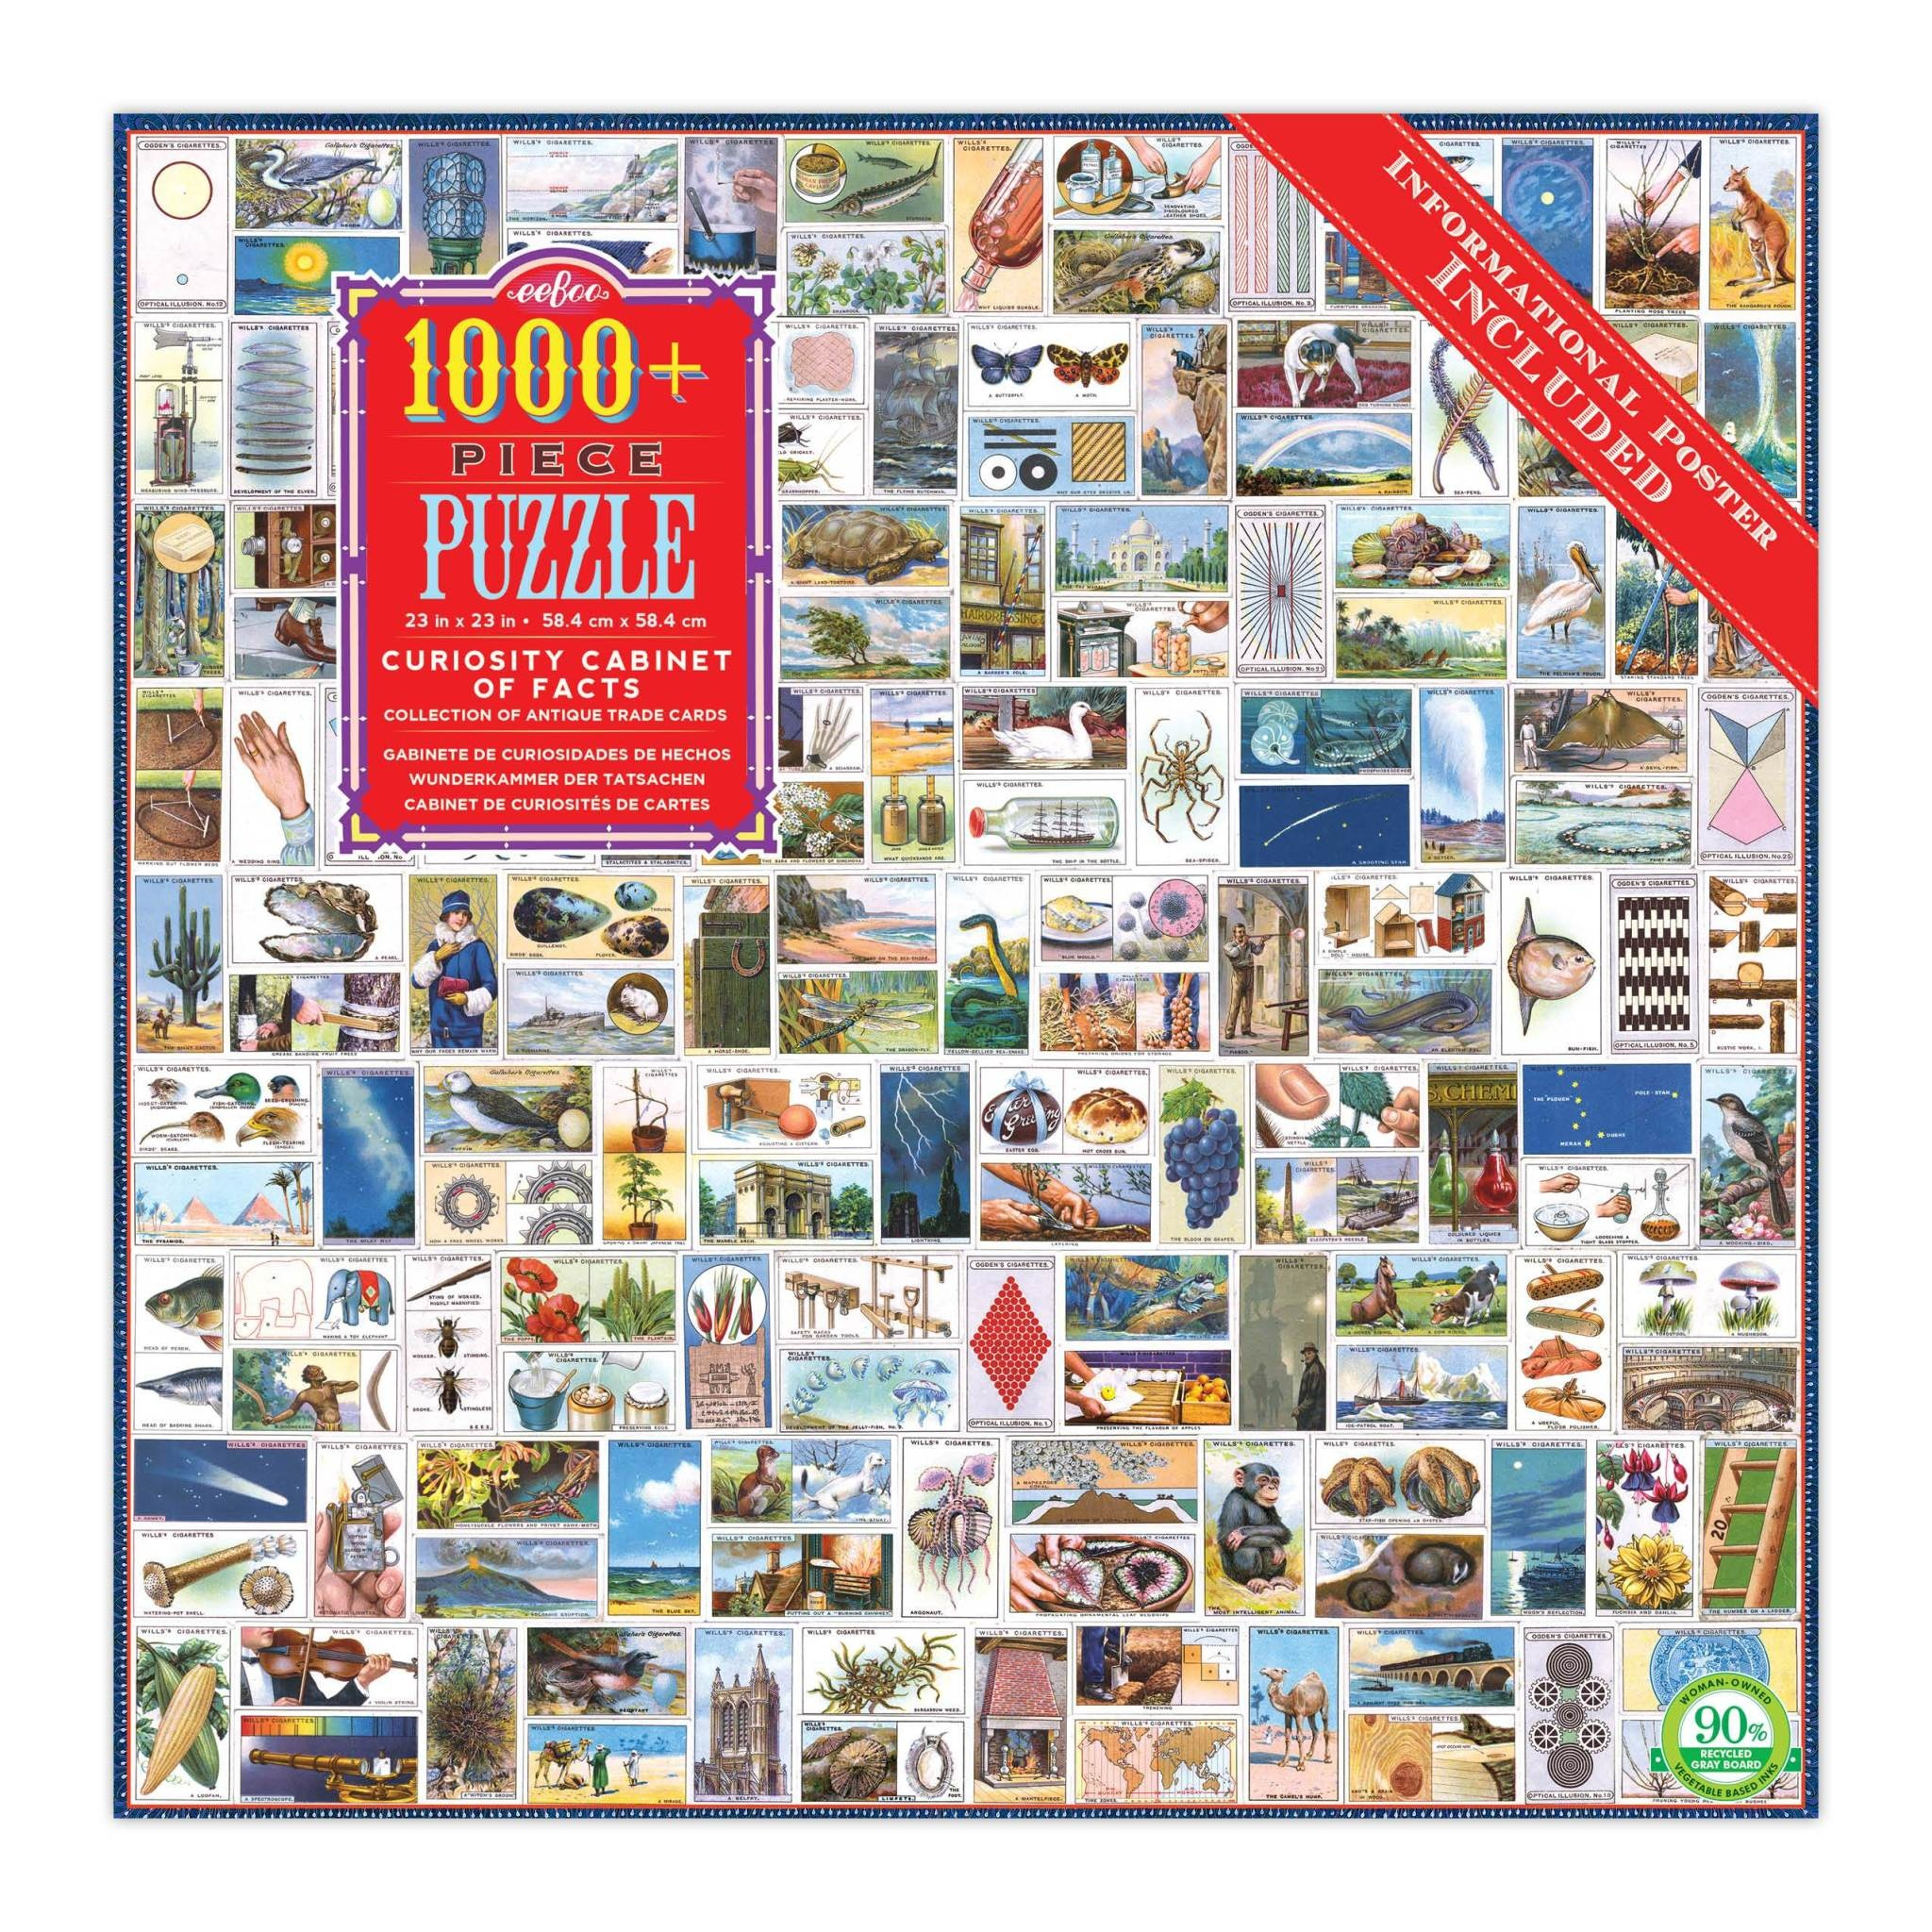 Curiosity Cabinet Of Facts Puzzle (1000 piece Jigsaw)